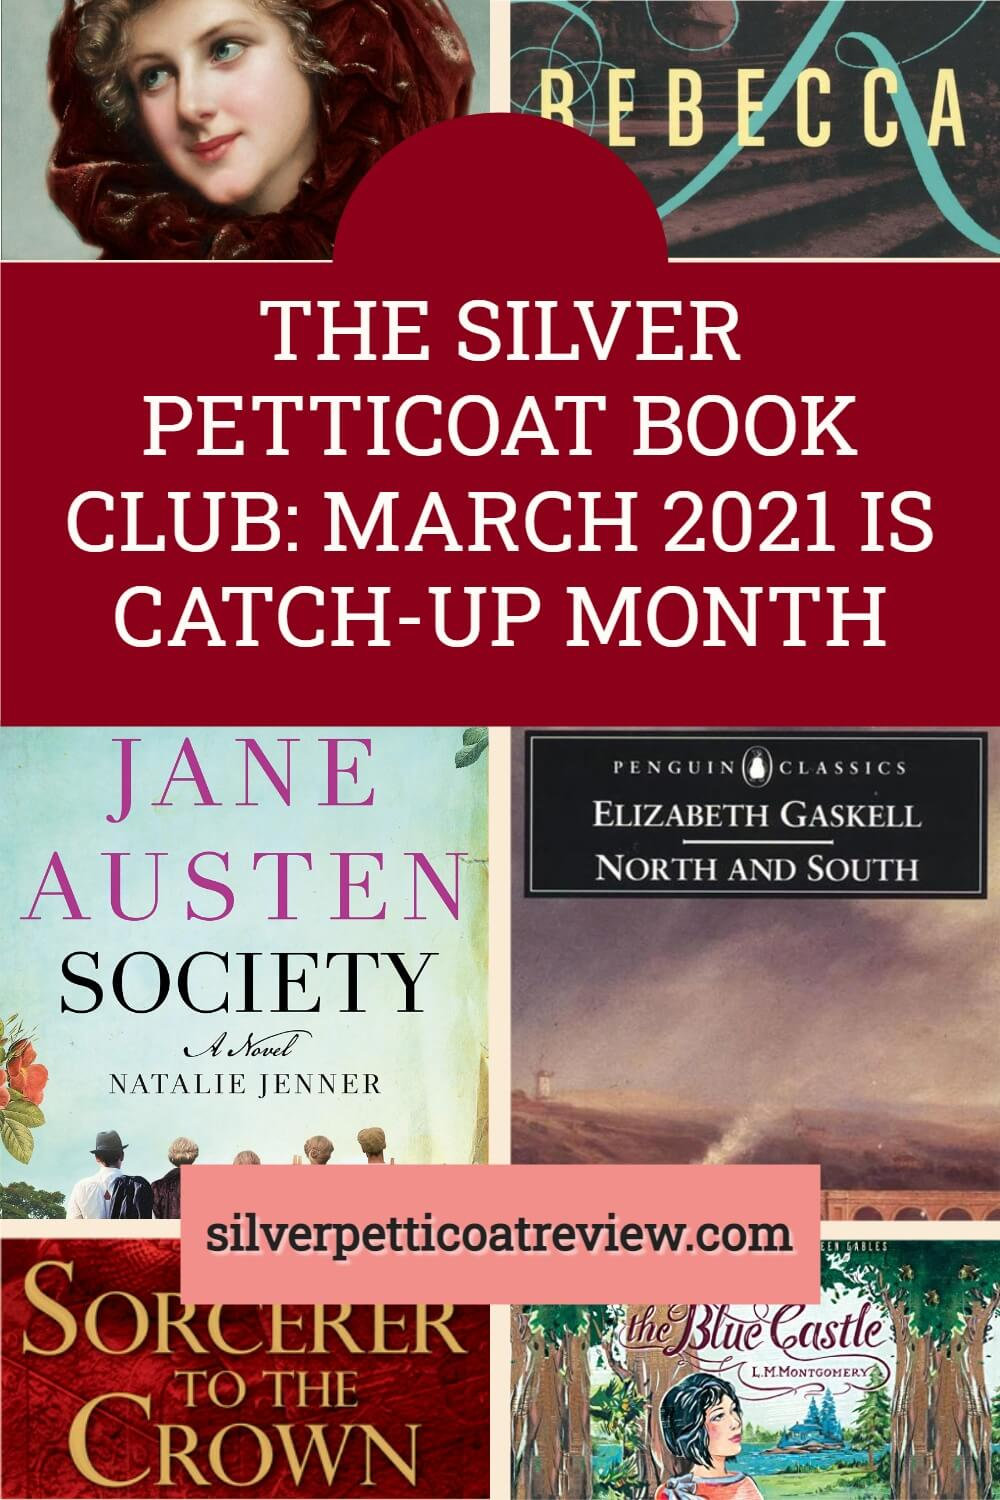 The Silver Petticoat Book Club: March 2021 is Catch-Up Month; Pinterest Image